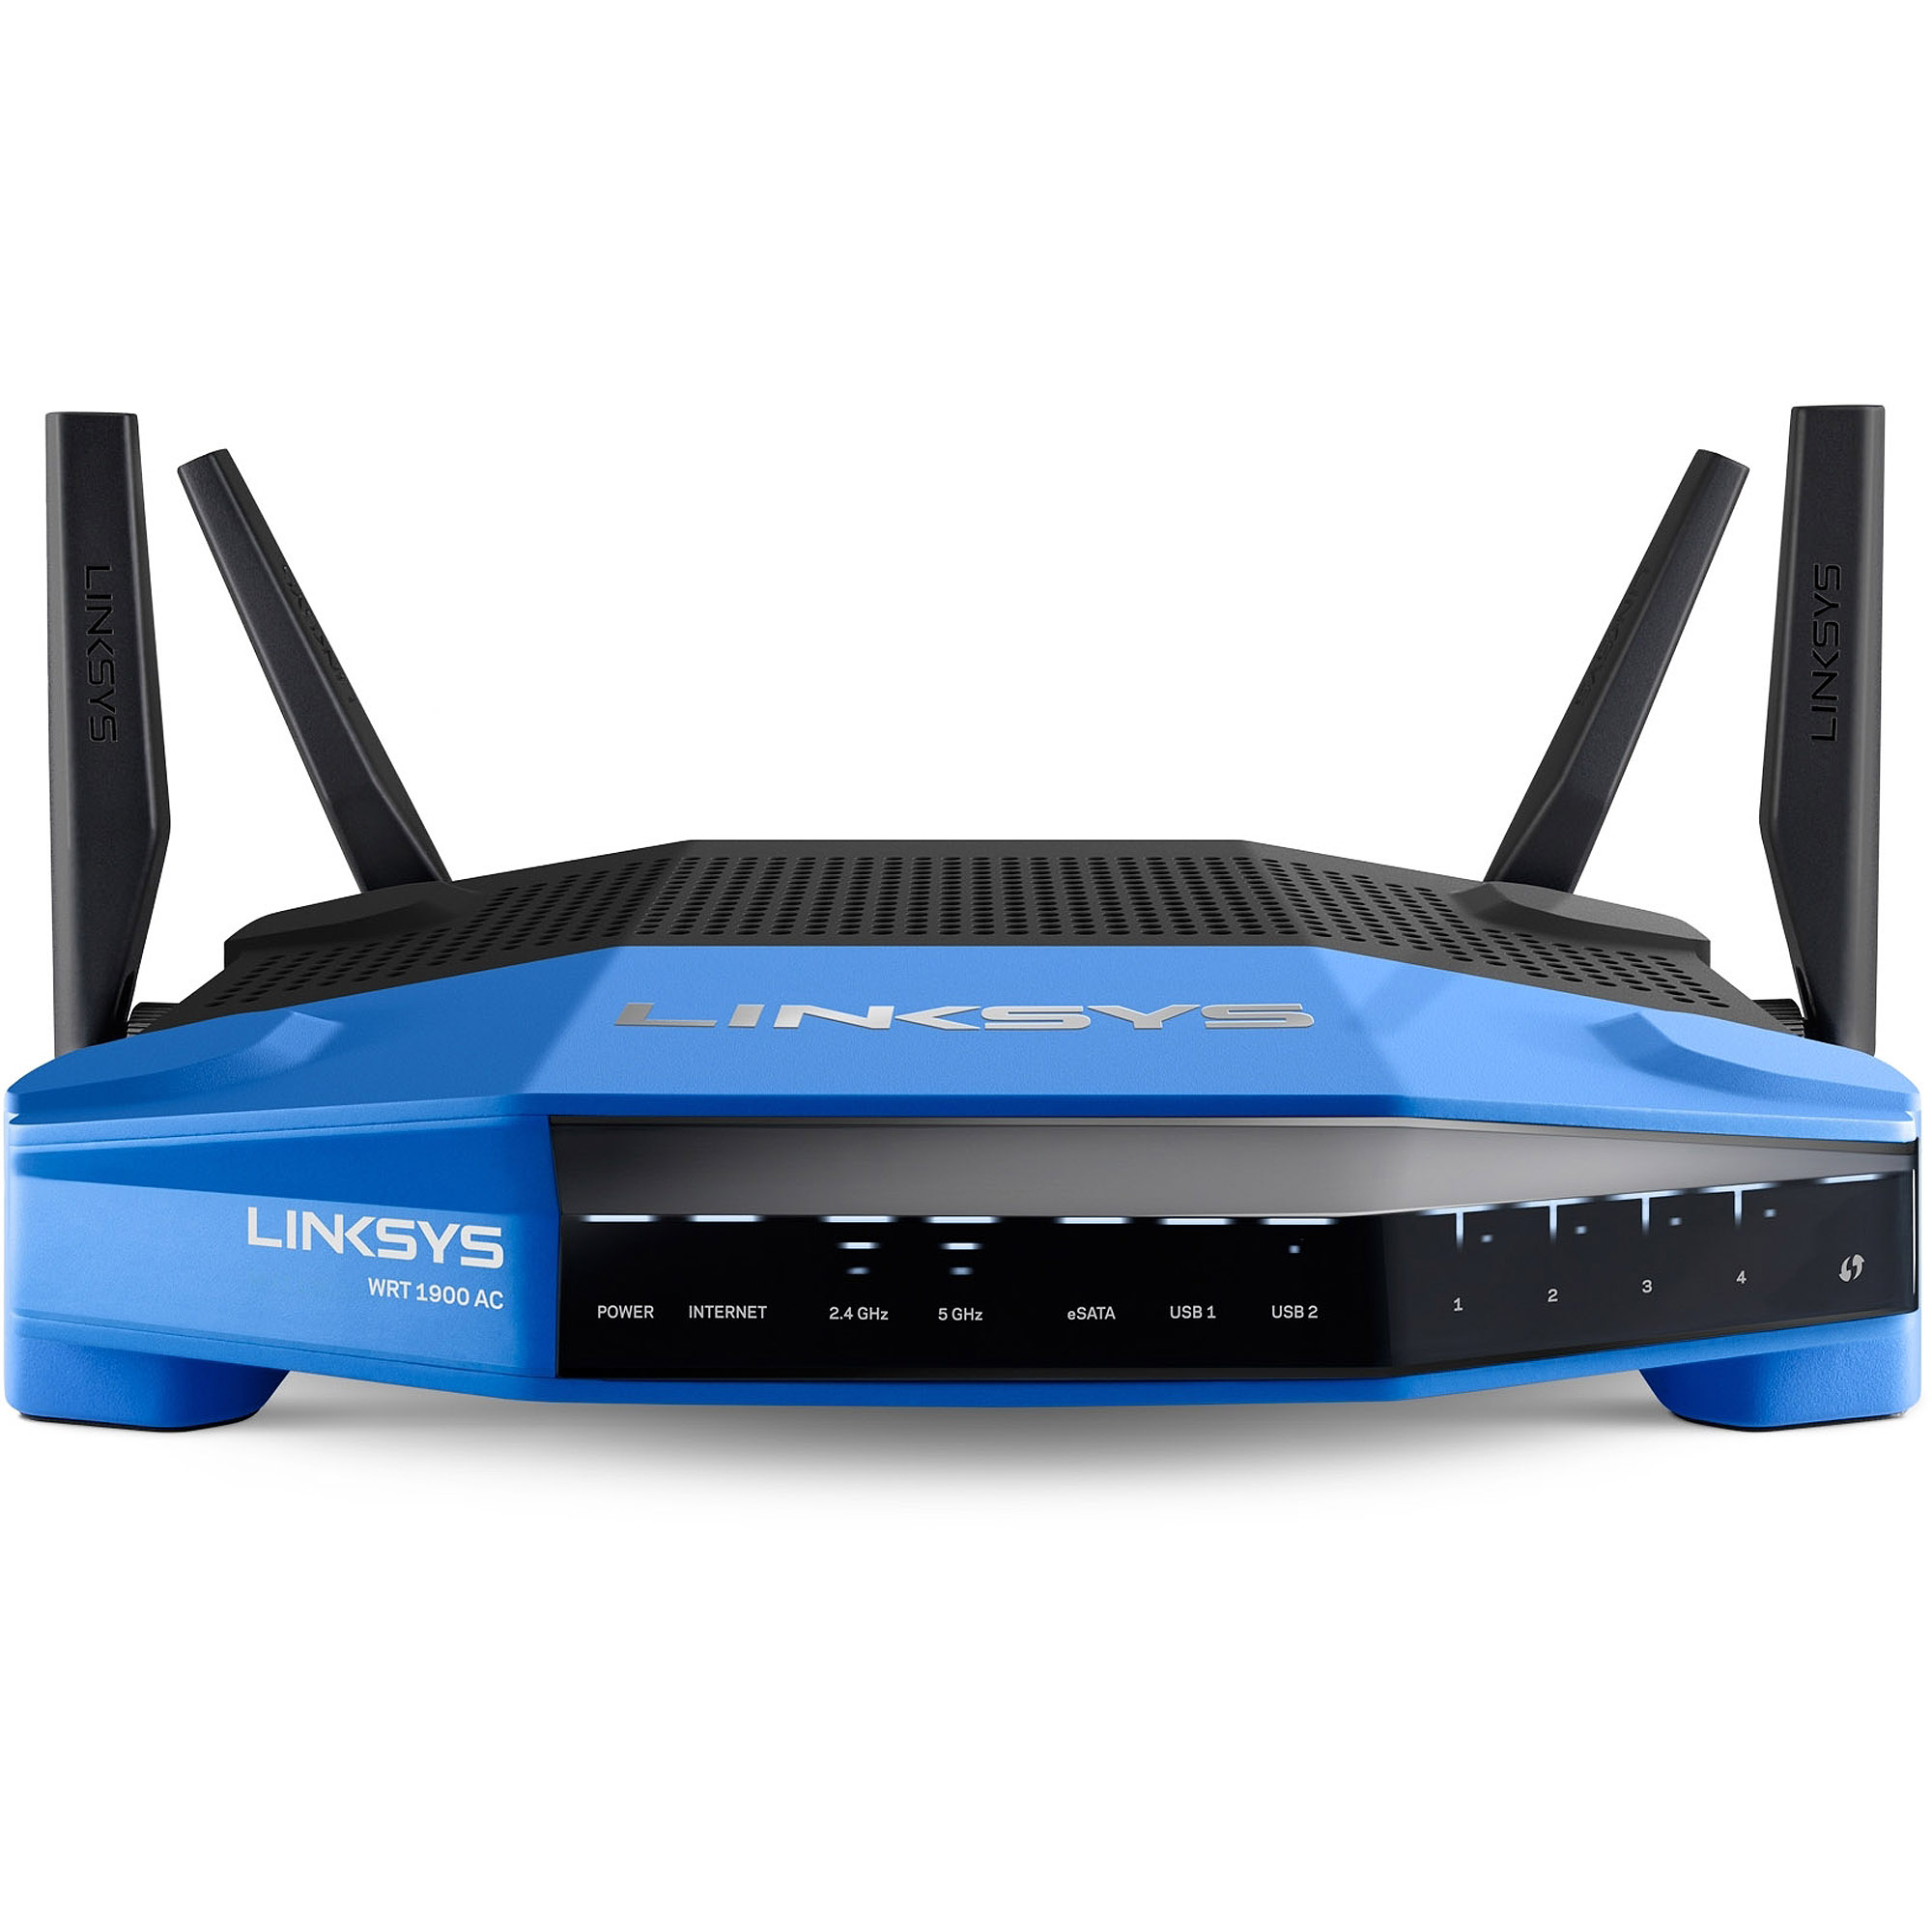 Linksys Dual-Band AC1900 Wireless Wi-Fi Router (WRT1900AC)